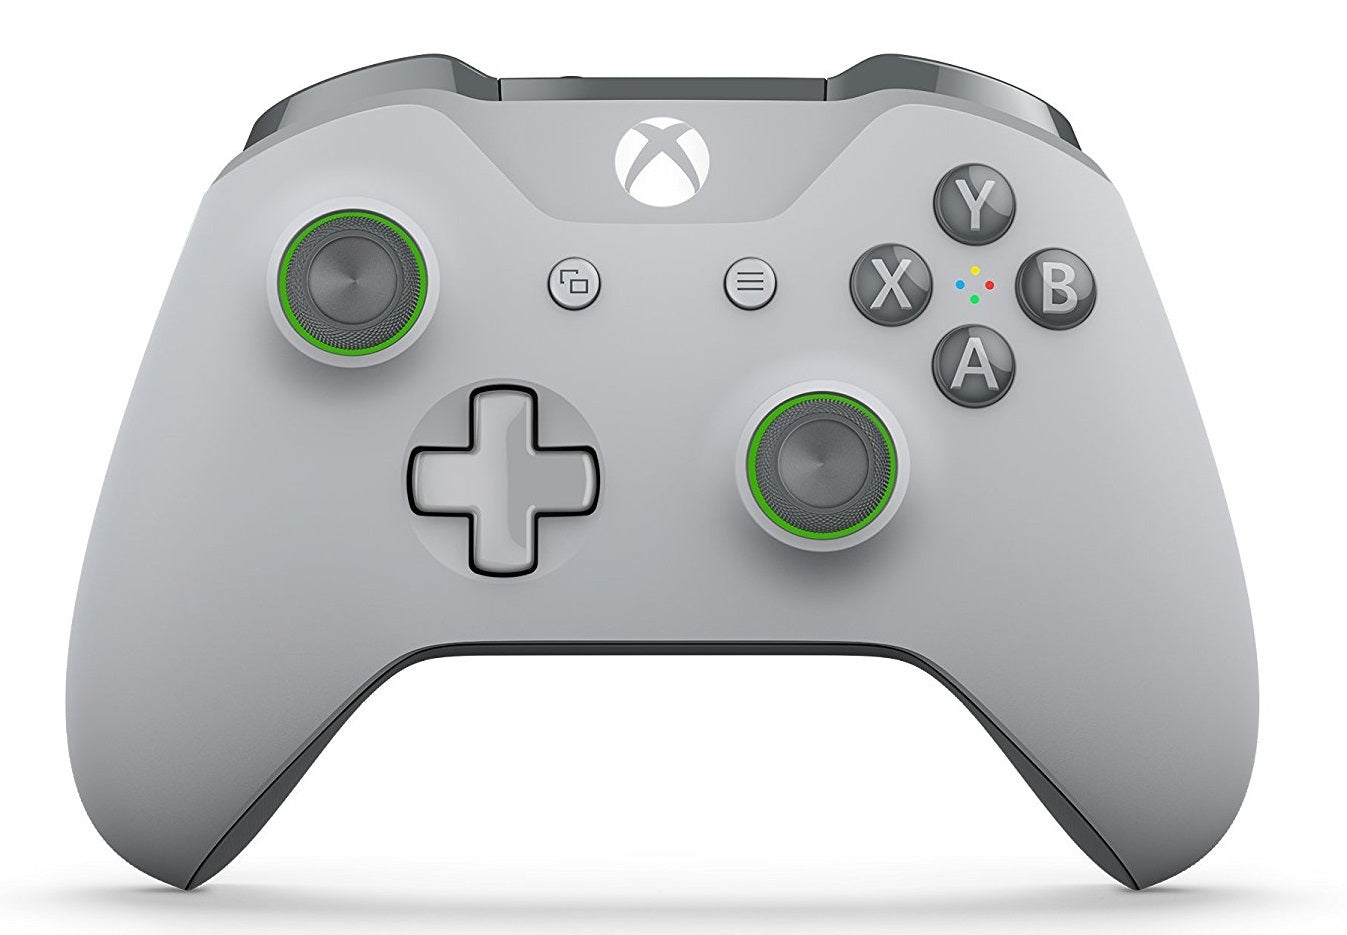 Xbox One Wireless Controller - Grey/Green (with Bluetooth) - Xbox One